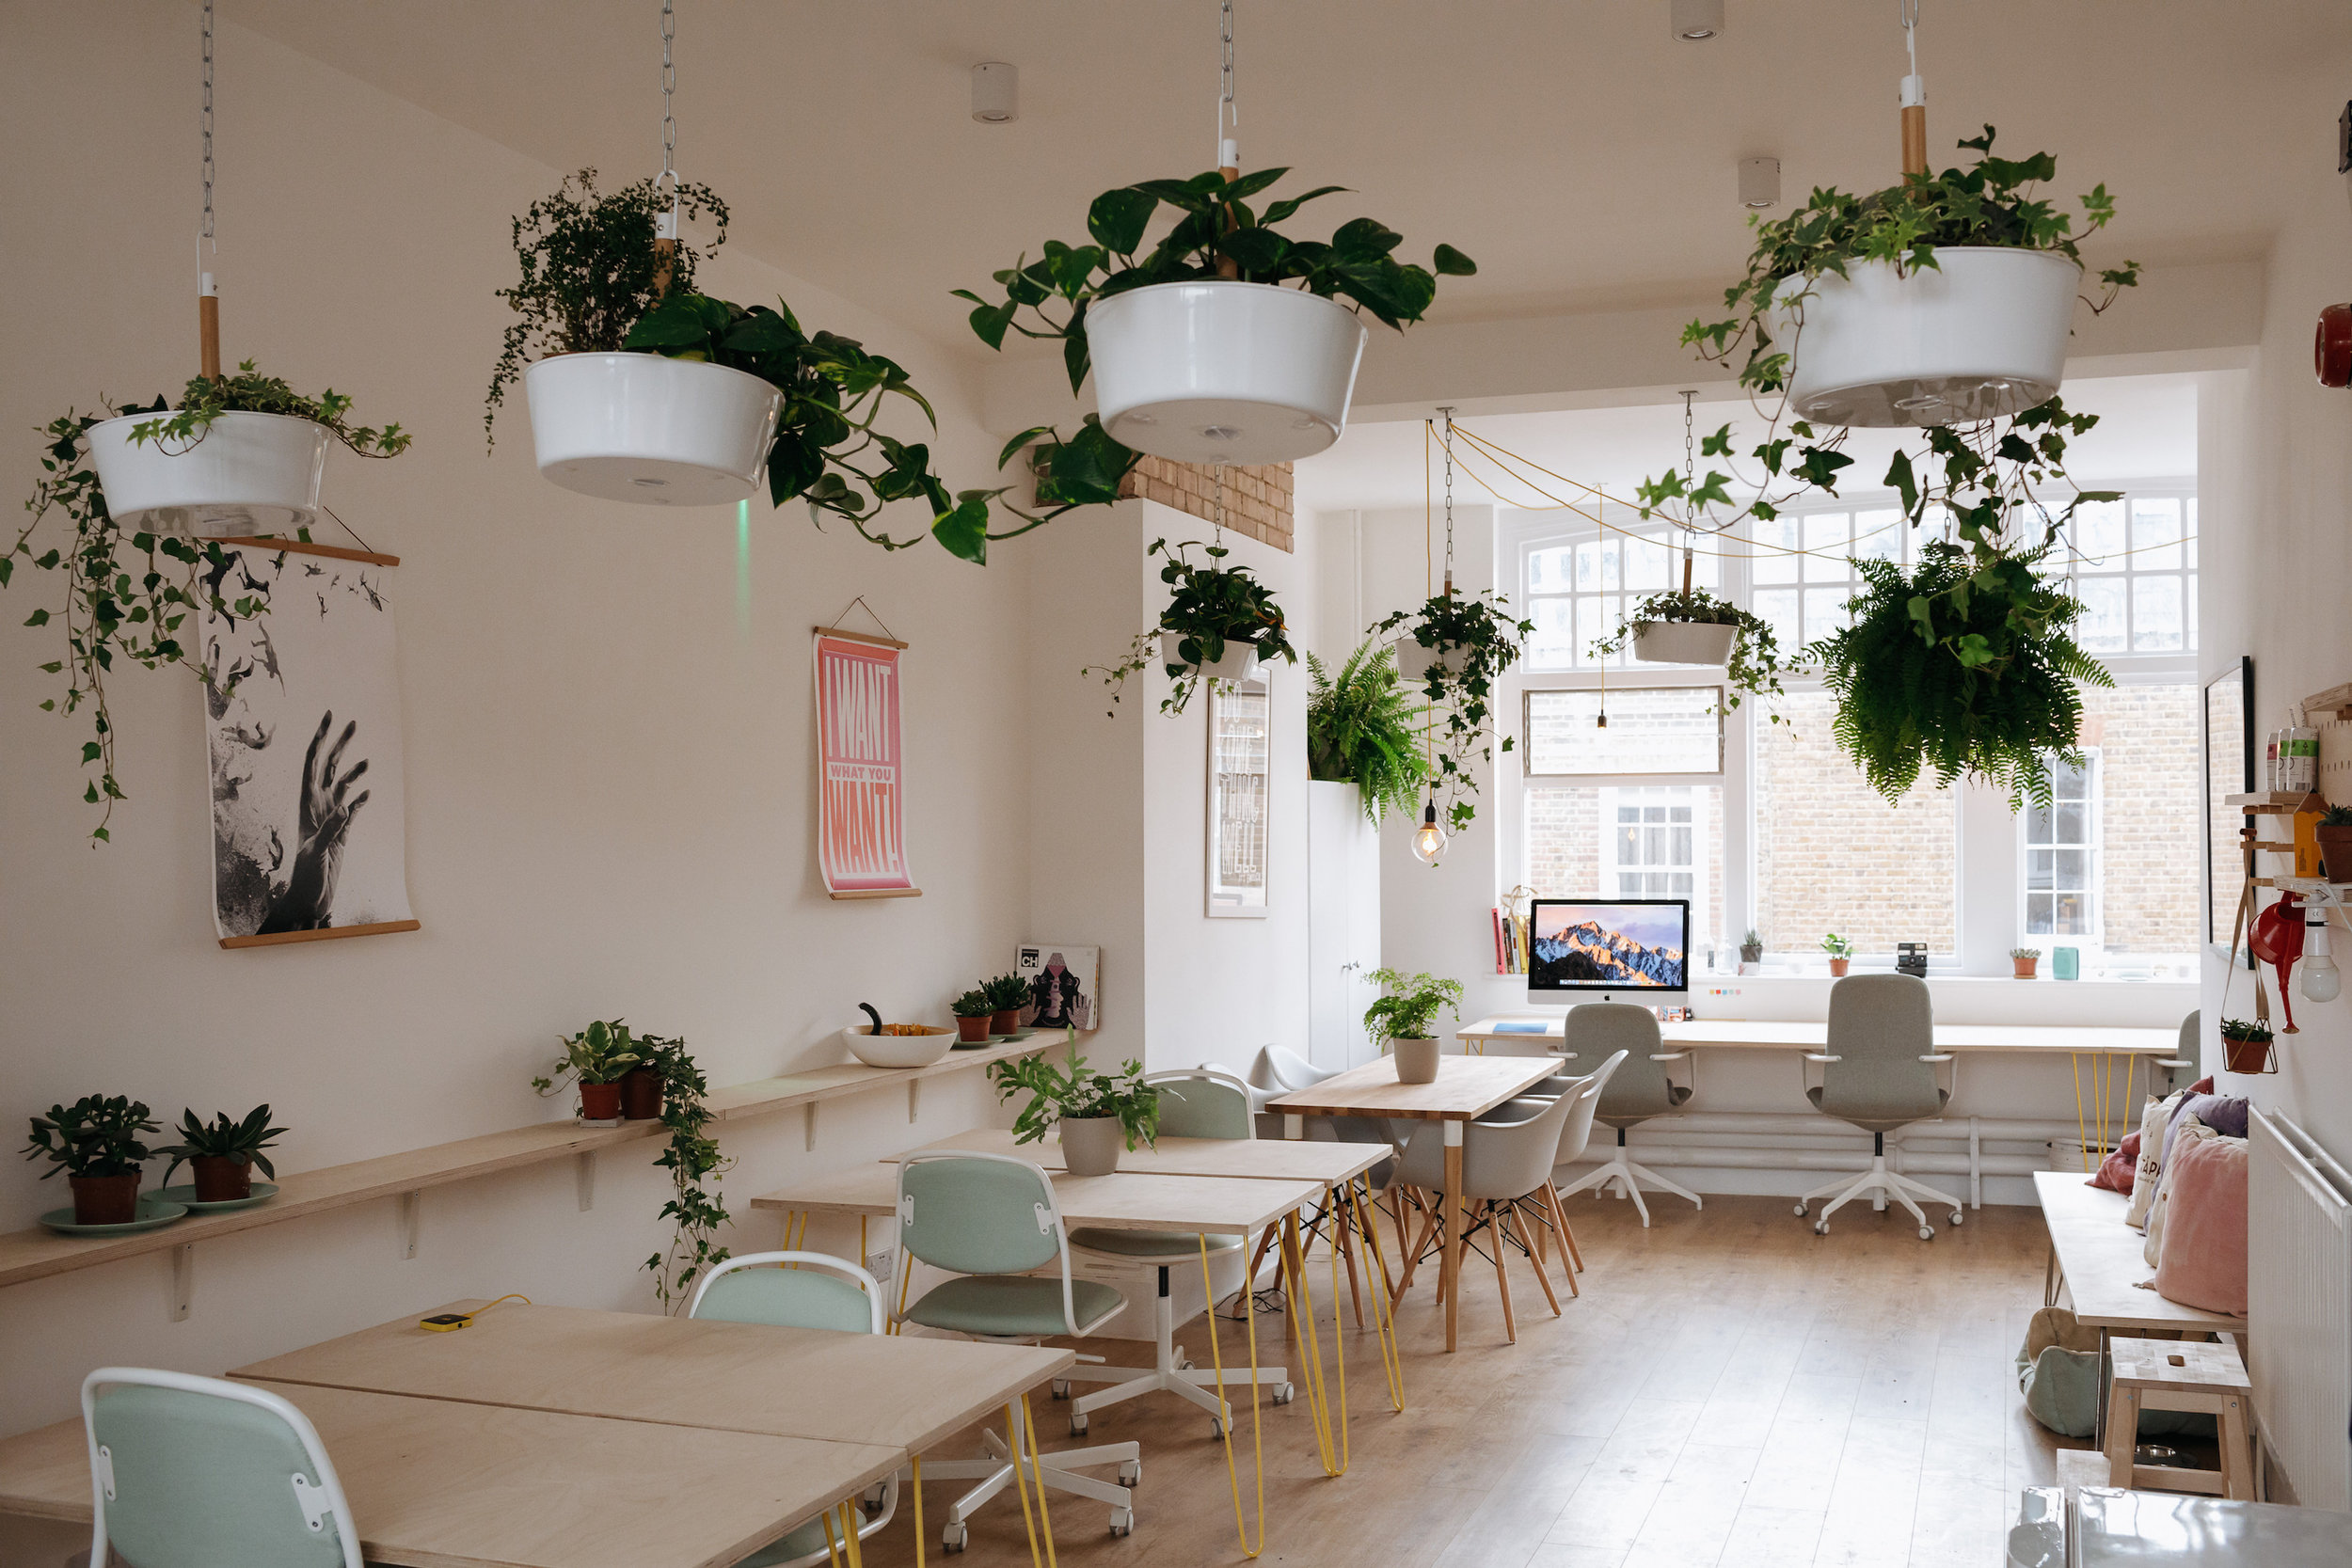 Our co-working space -